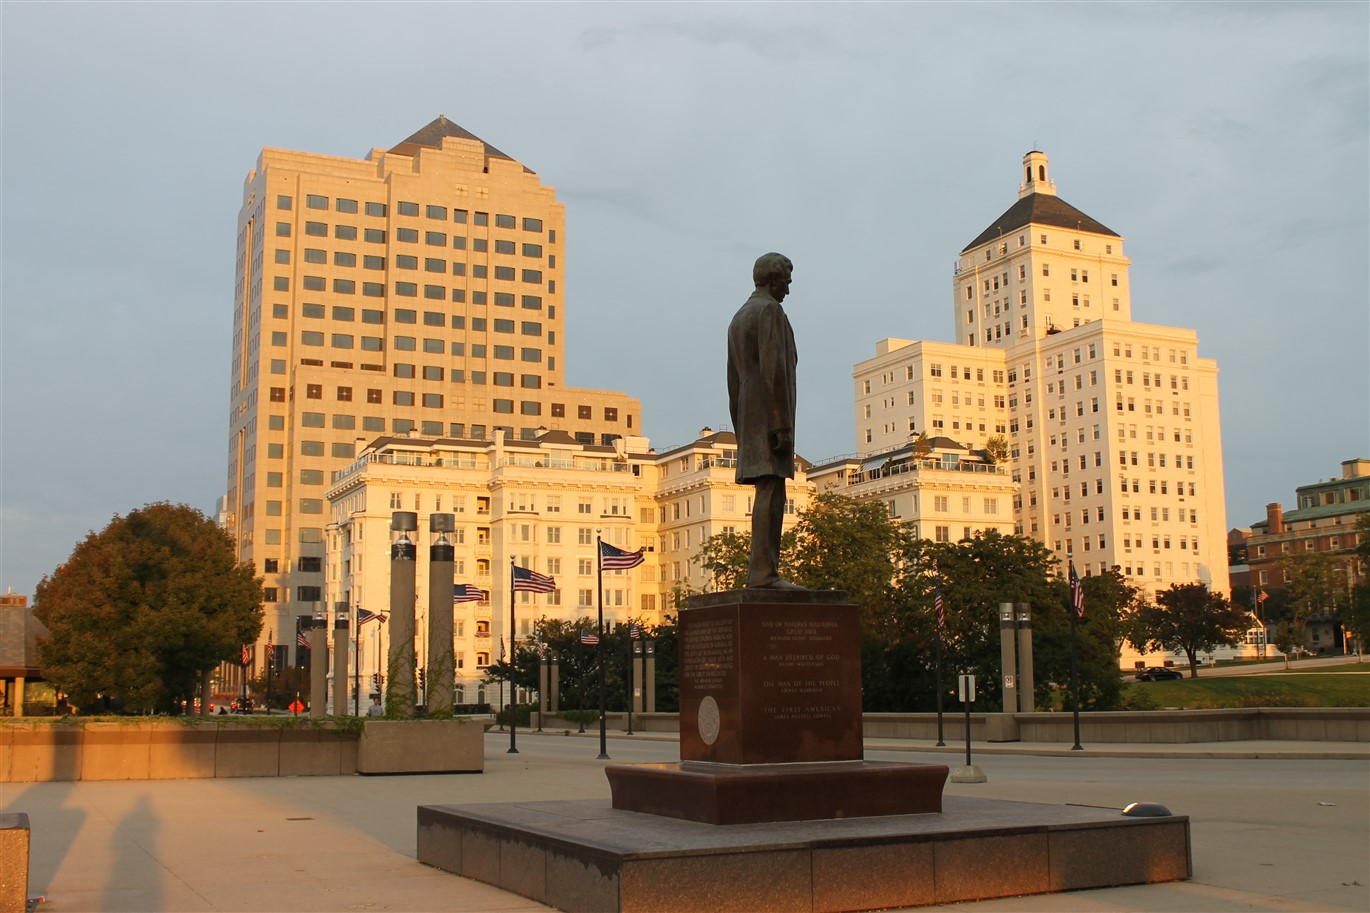 2014 09 20 10 Milwaukee.jpg